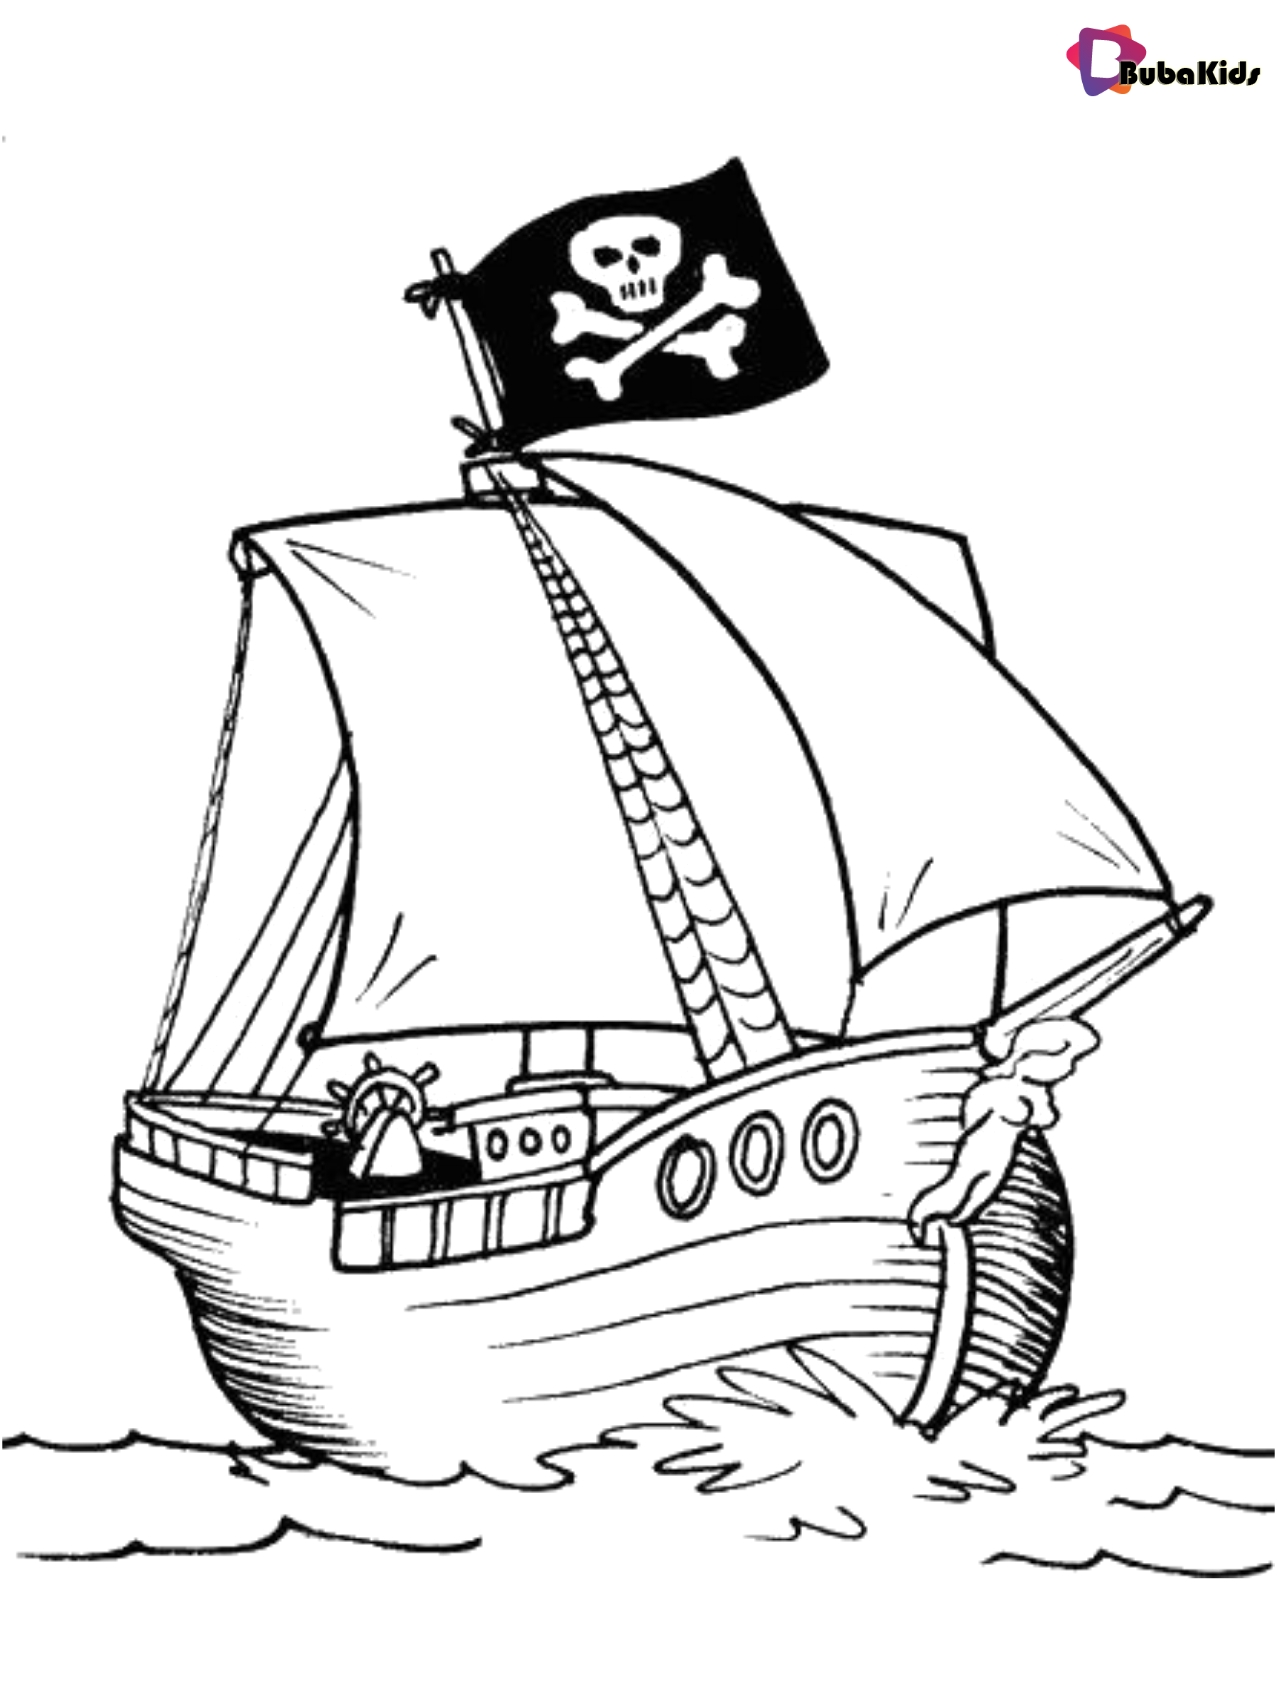 ship coloring pages coloring picture pirate ship free printable bubakidscom pages coloring ship